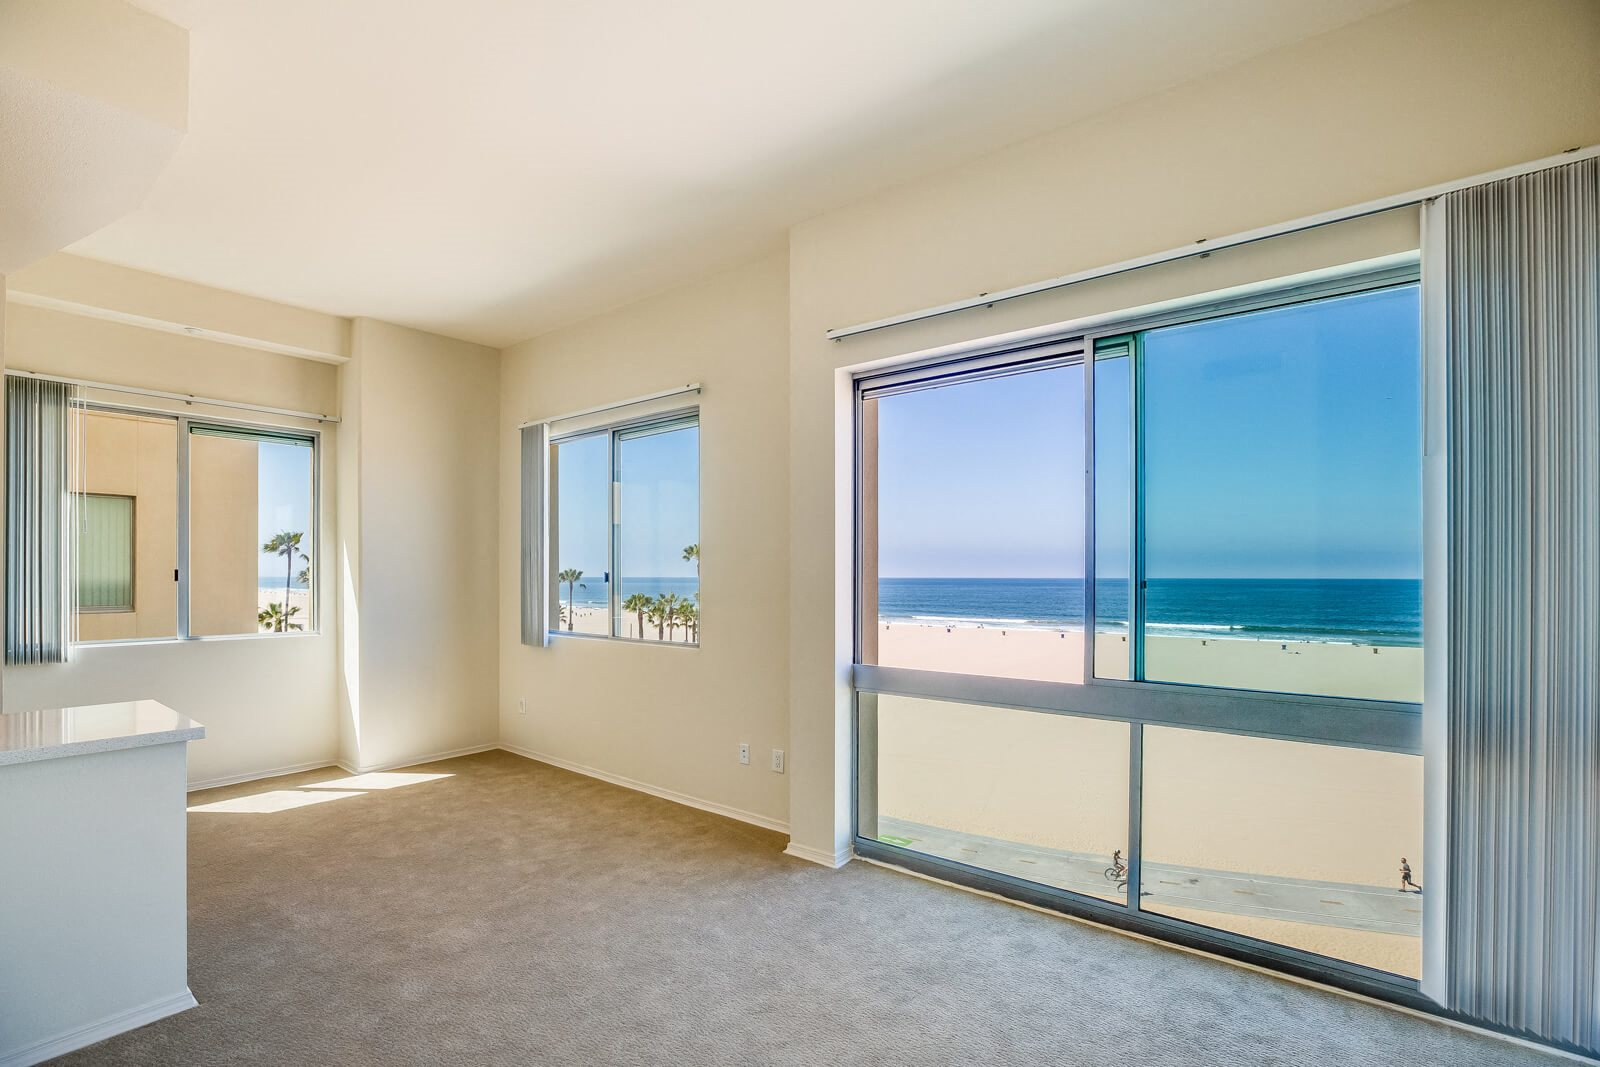 Ocean View Apartments at Sea Castle, 1725 Ocean Front Walk, Santa Monica